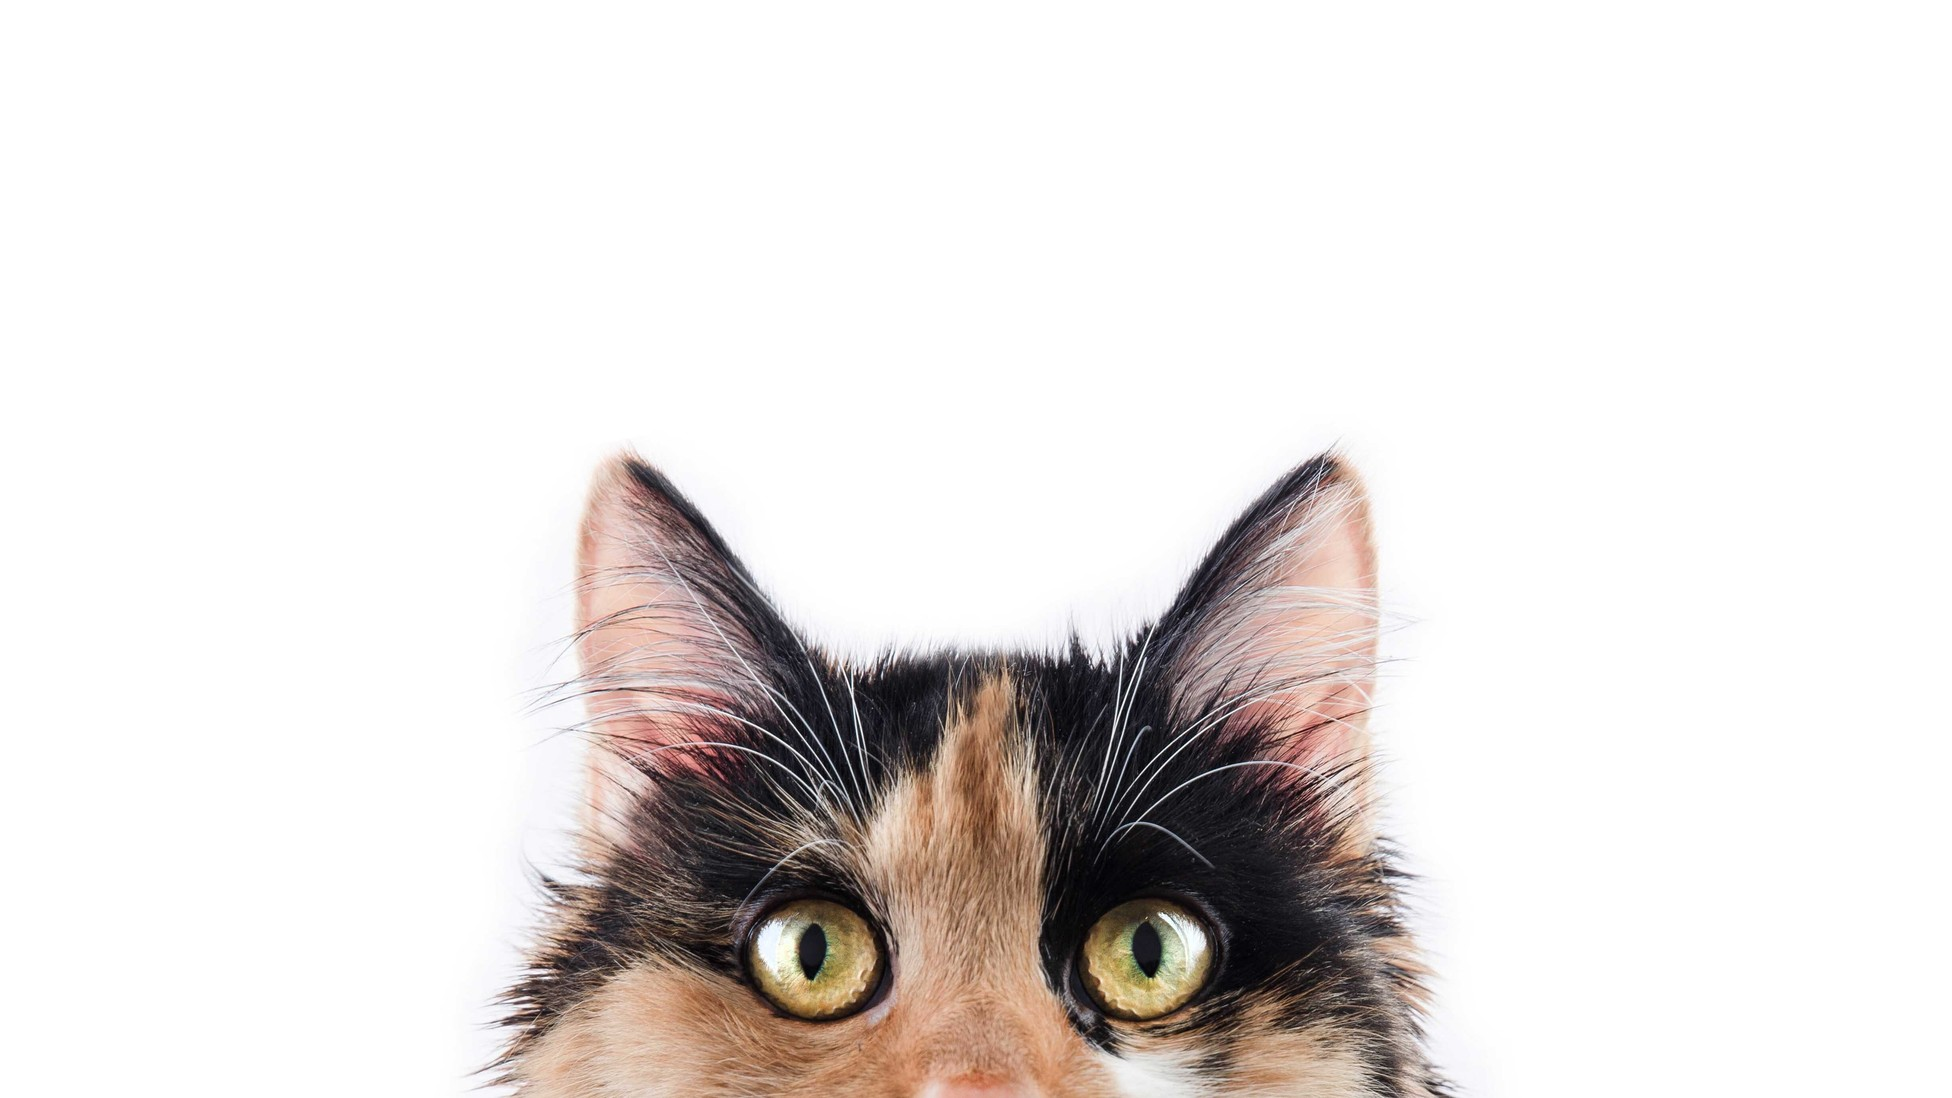 Cat Genomes Are Similar to Human Genomes